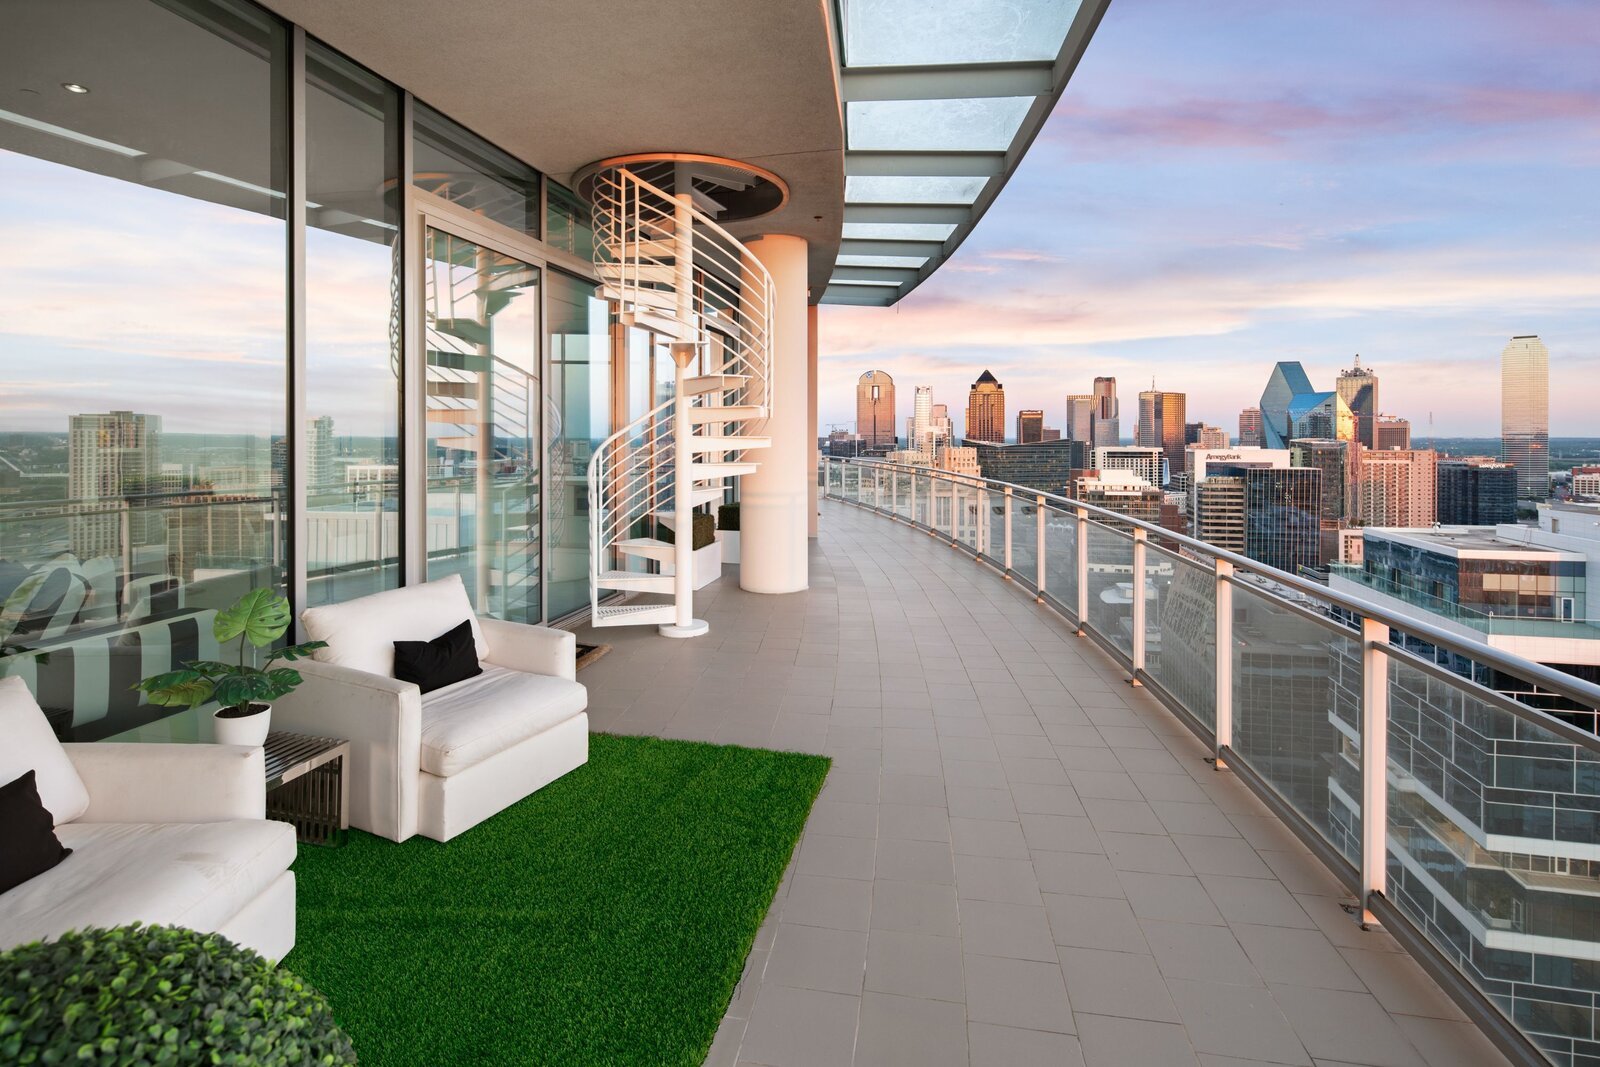 Photo 4 of 10 in An Indoor/Outdoor Penthouse With Downtown Dallas Views Wants $5.7M